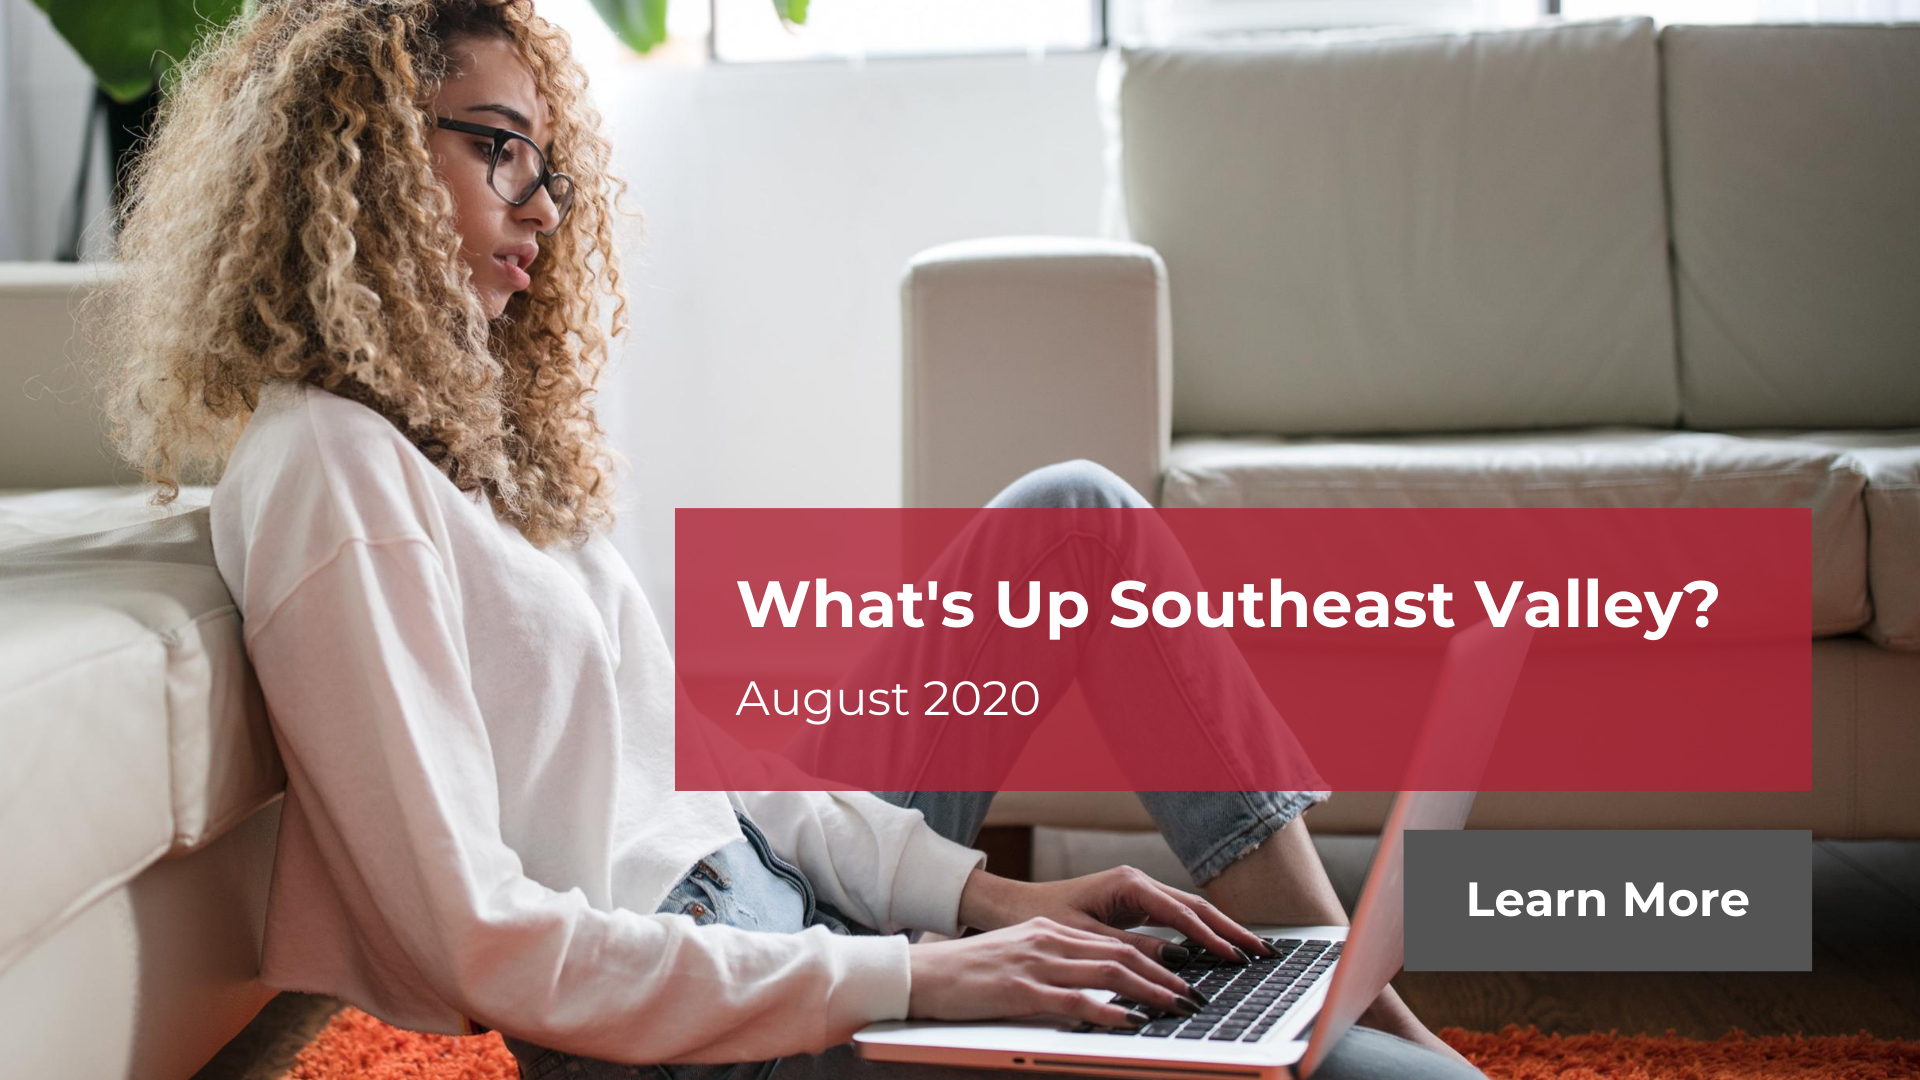 What's Up Southeast Valley? August 2020